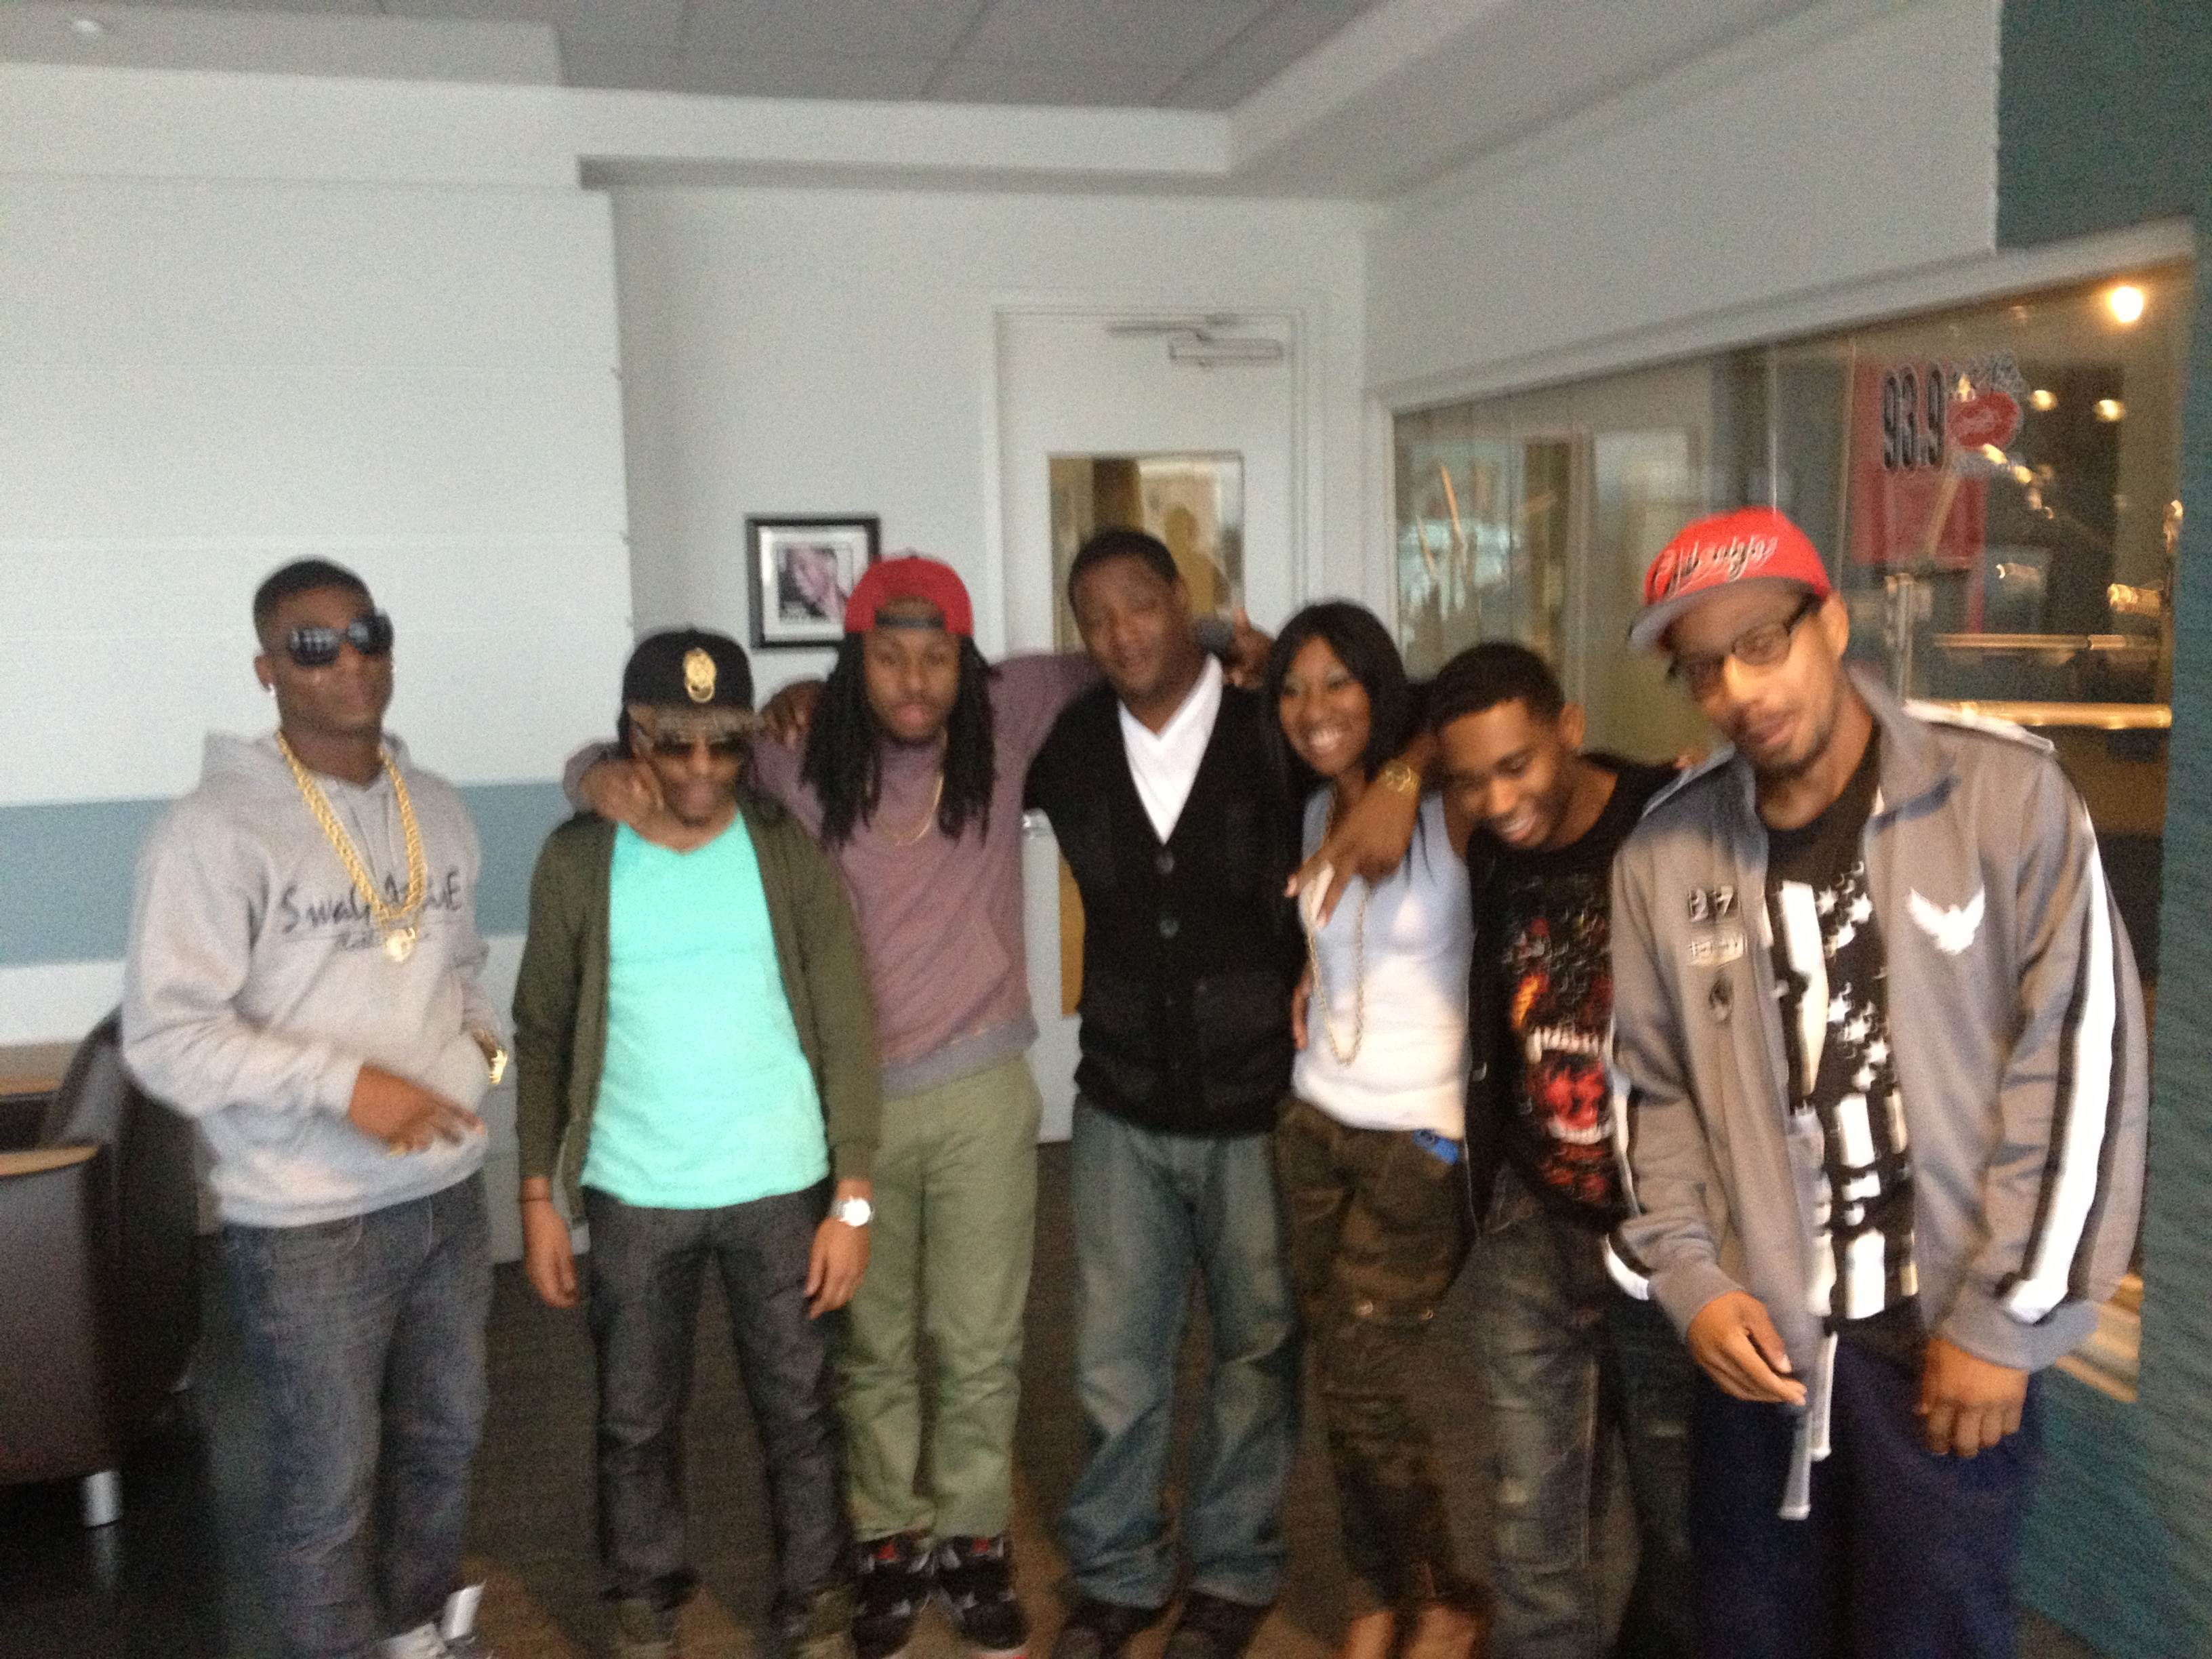 DMV ARTIST TWEET UP 5 INTERVIEWS & PERFORMANCES [VIDEO]